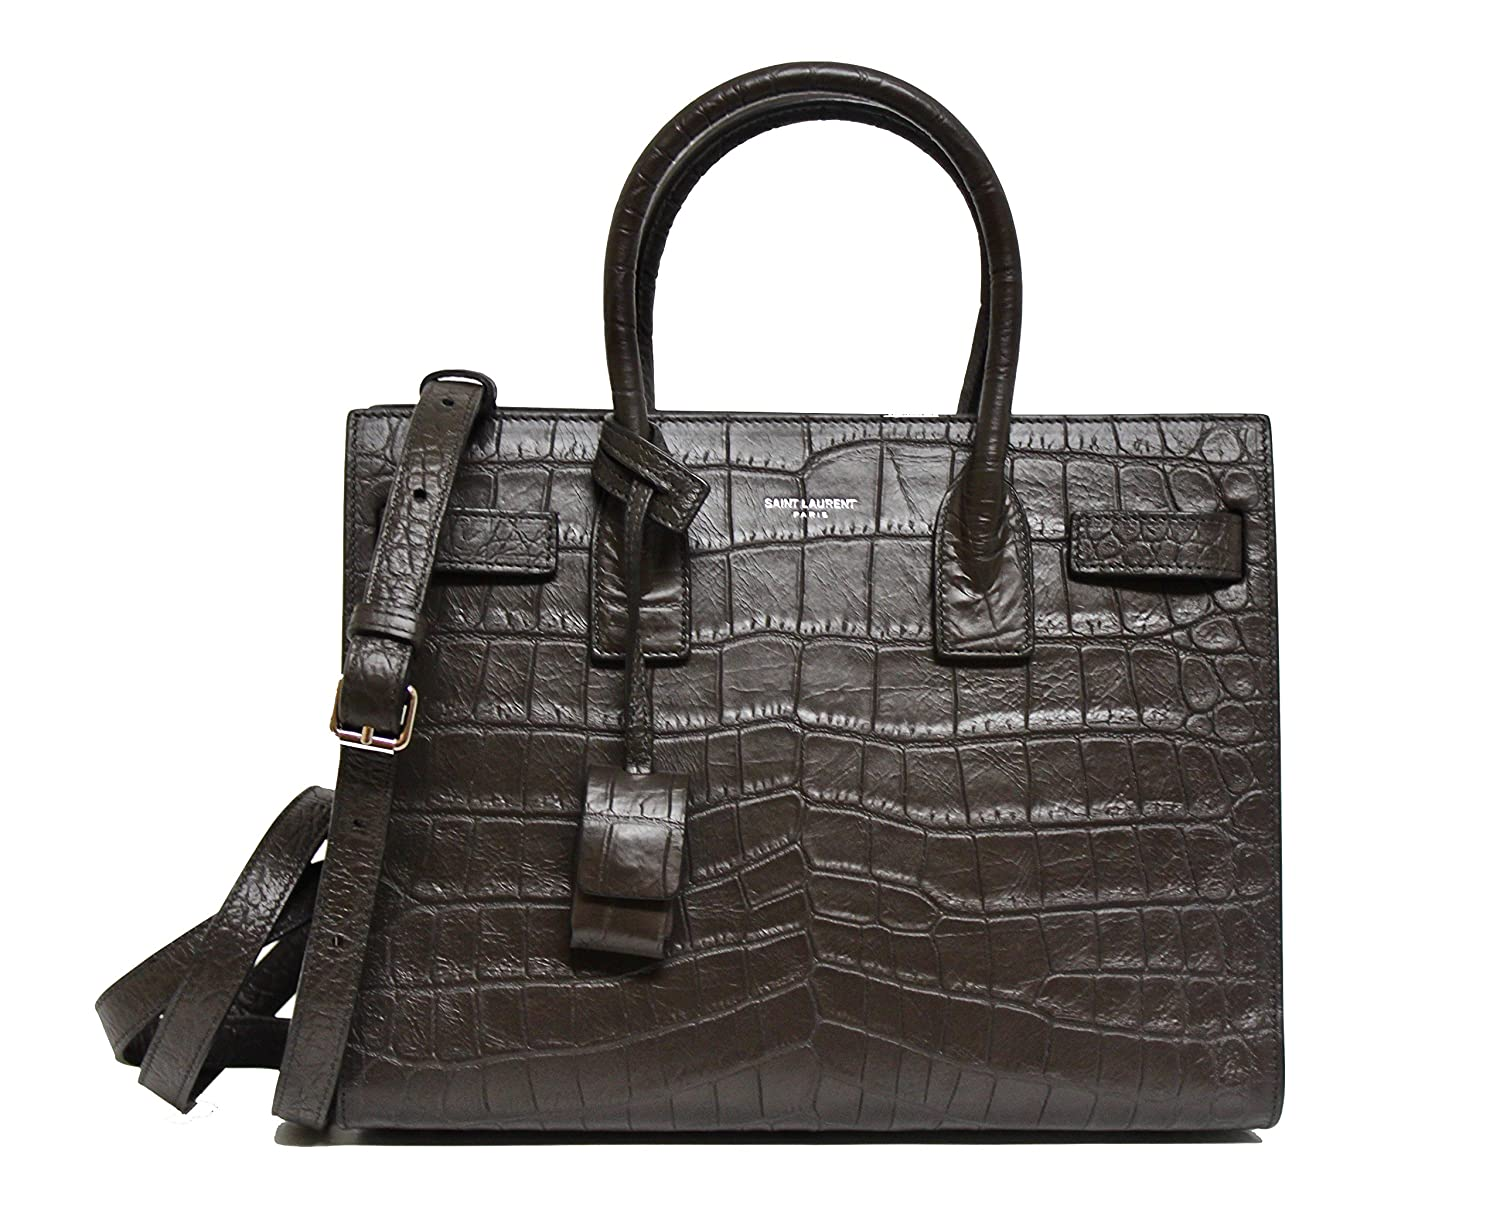 d6cbb78e77 Amazon.com  YSL Saint Laurent Small Sac De Jour Tote Bag in Grey Leather  355153 2034 W14  Baby